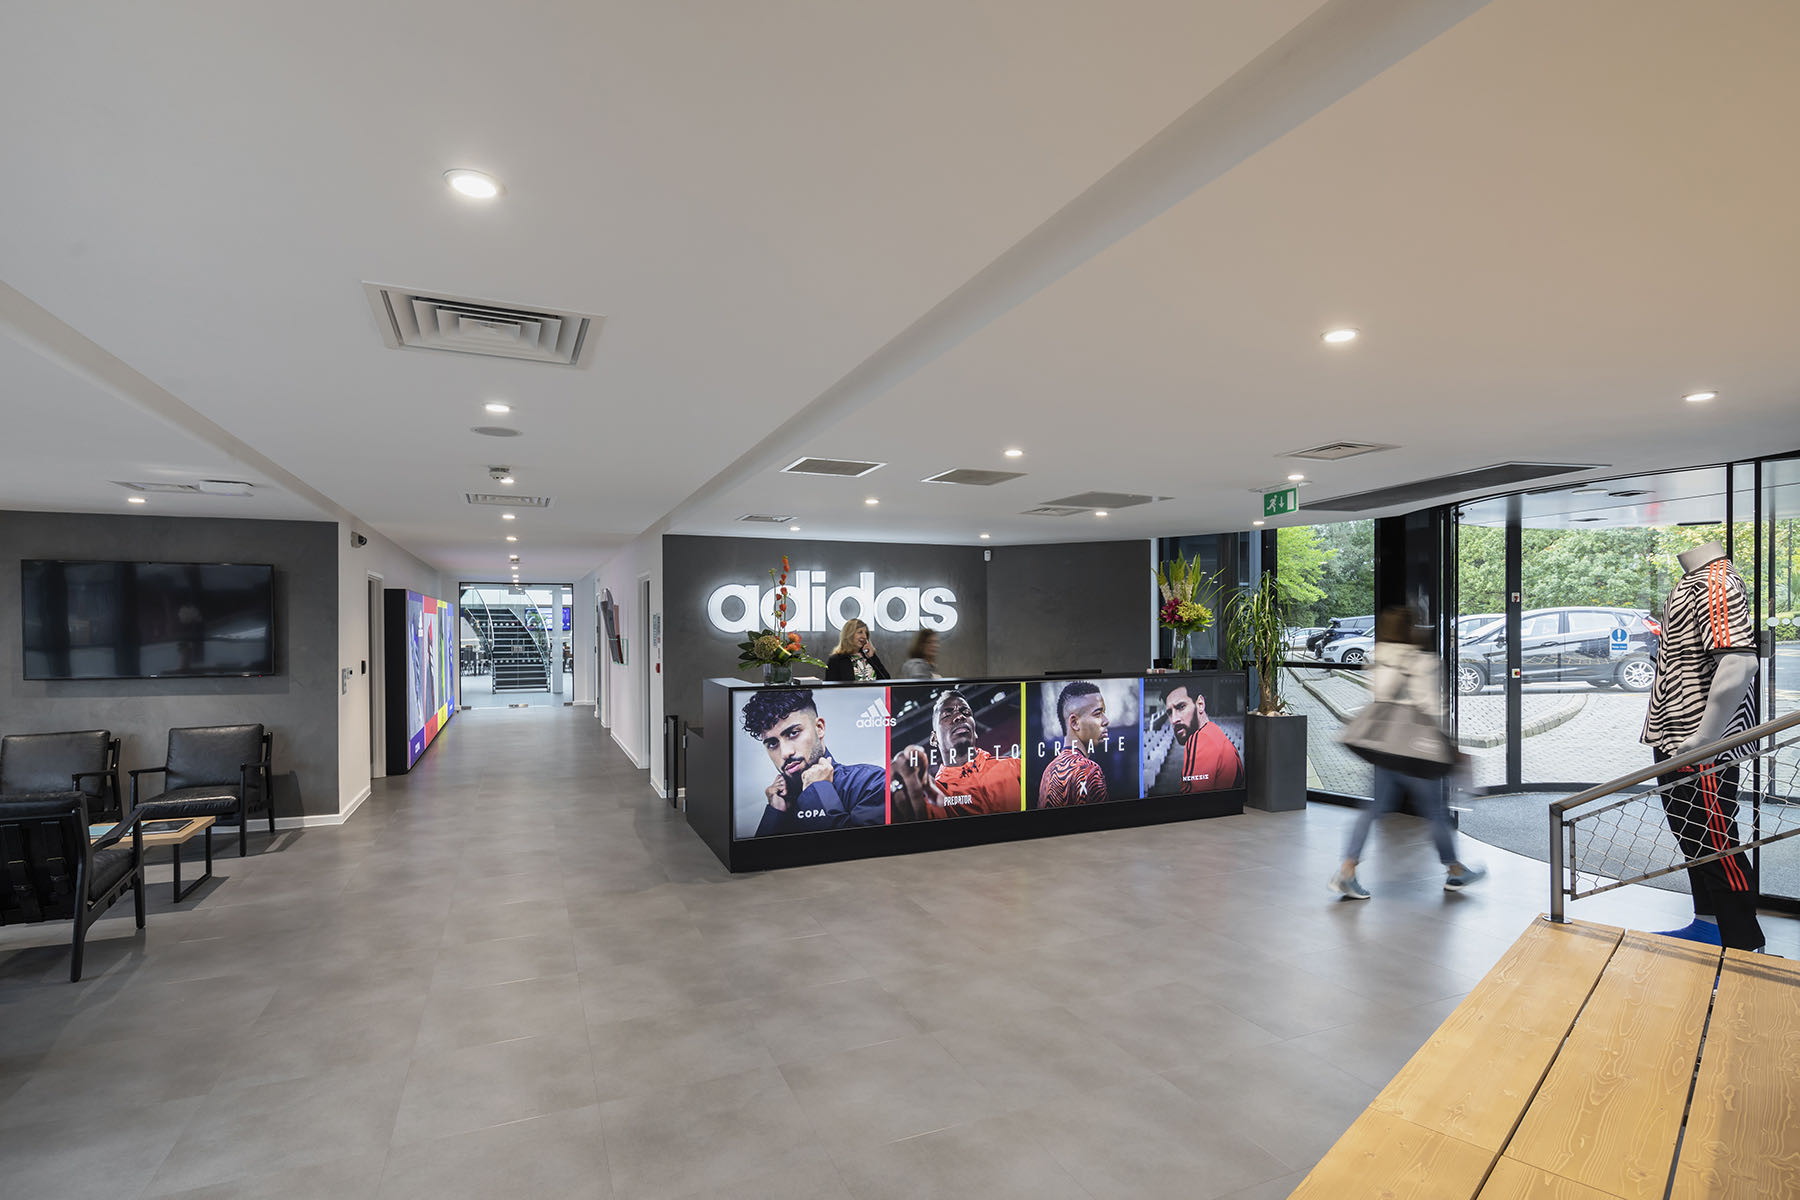 A Tour Of Adidas' New Manchester Headquarters